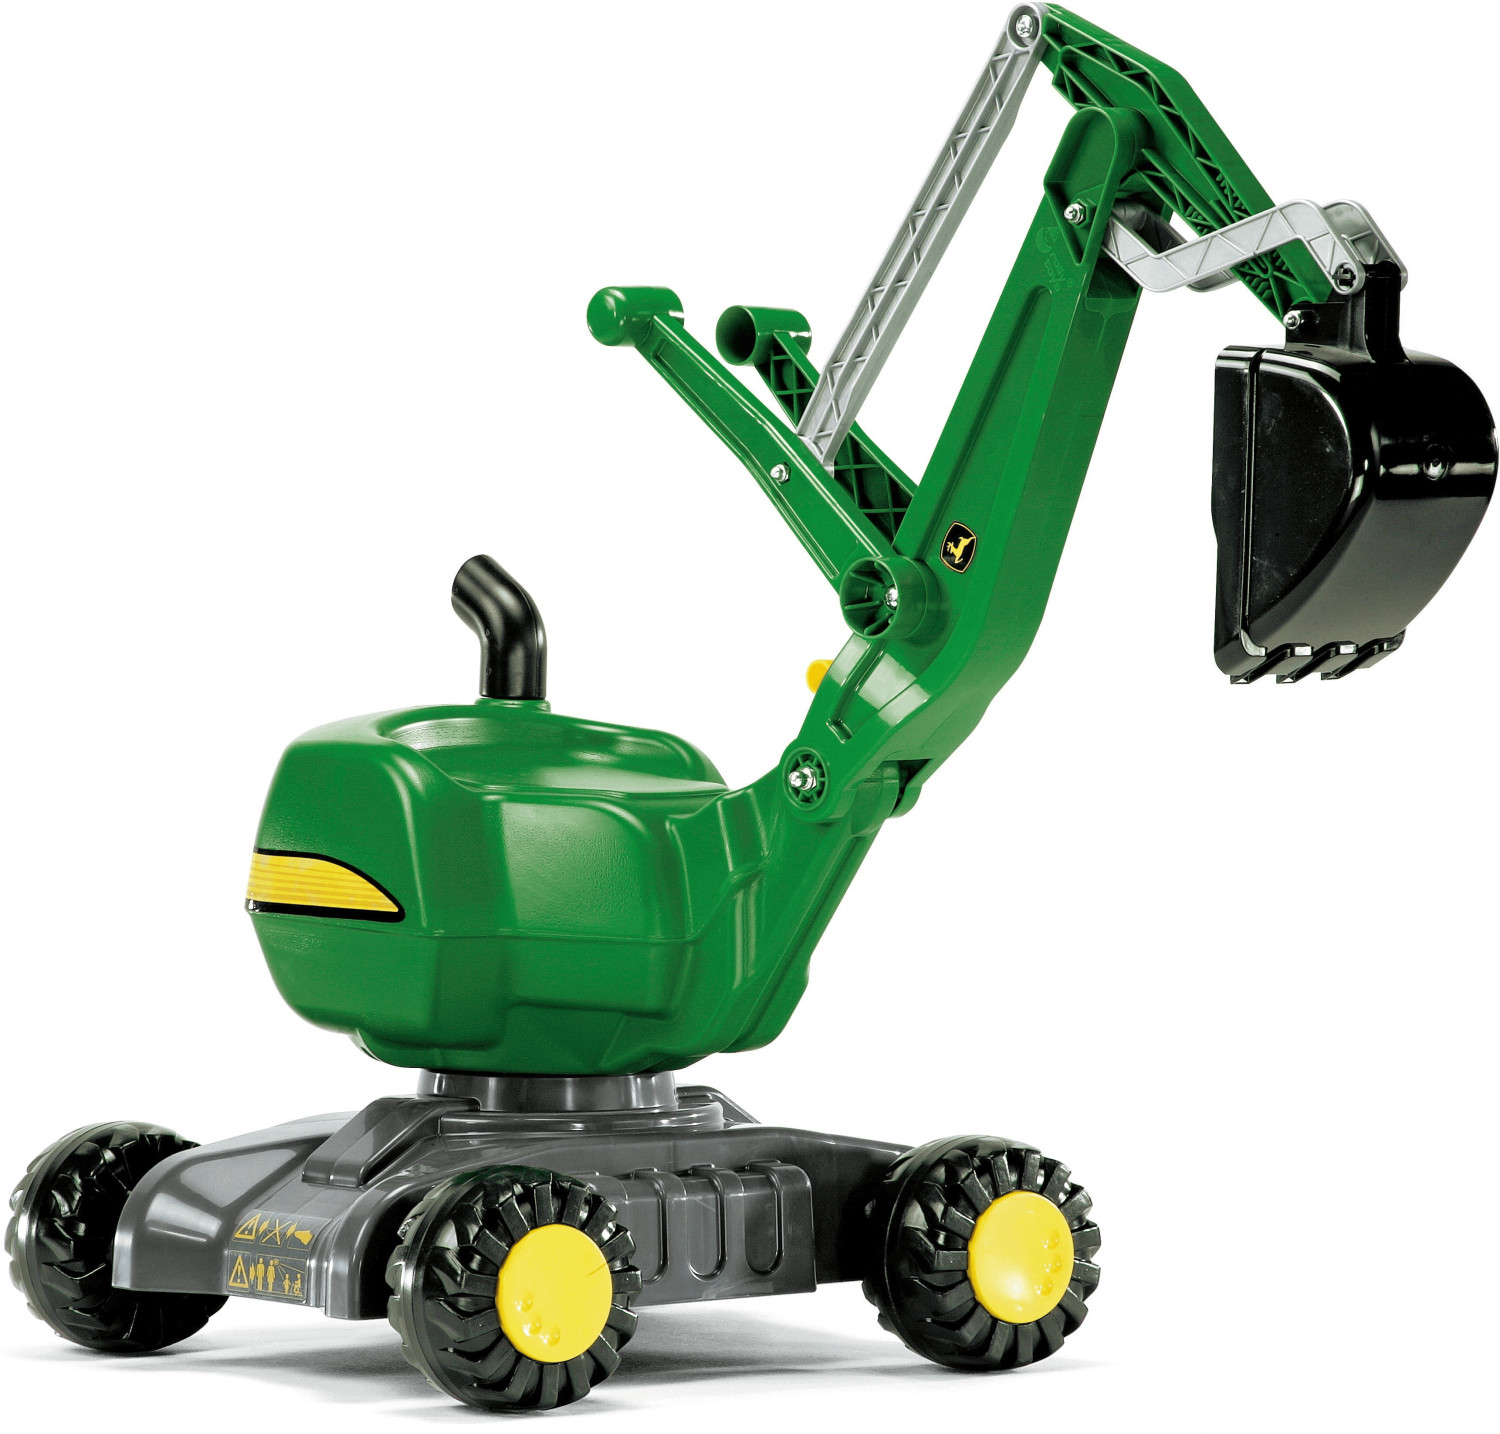 Image of Rolly Toys rollyDigger John Deere Escavatrice su ruote